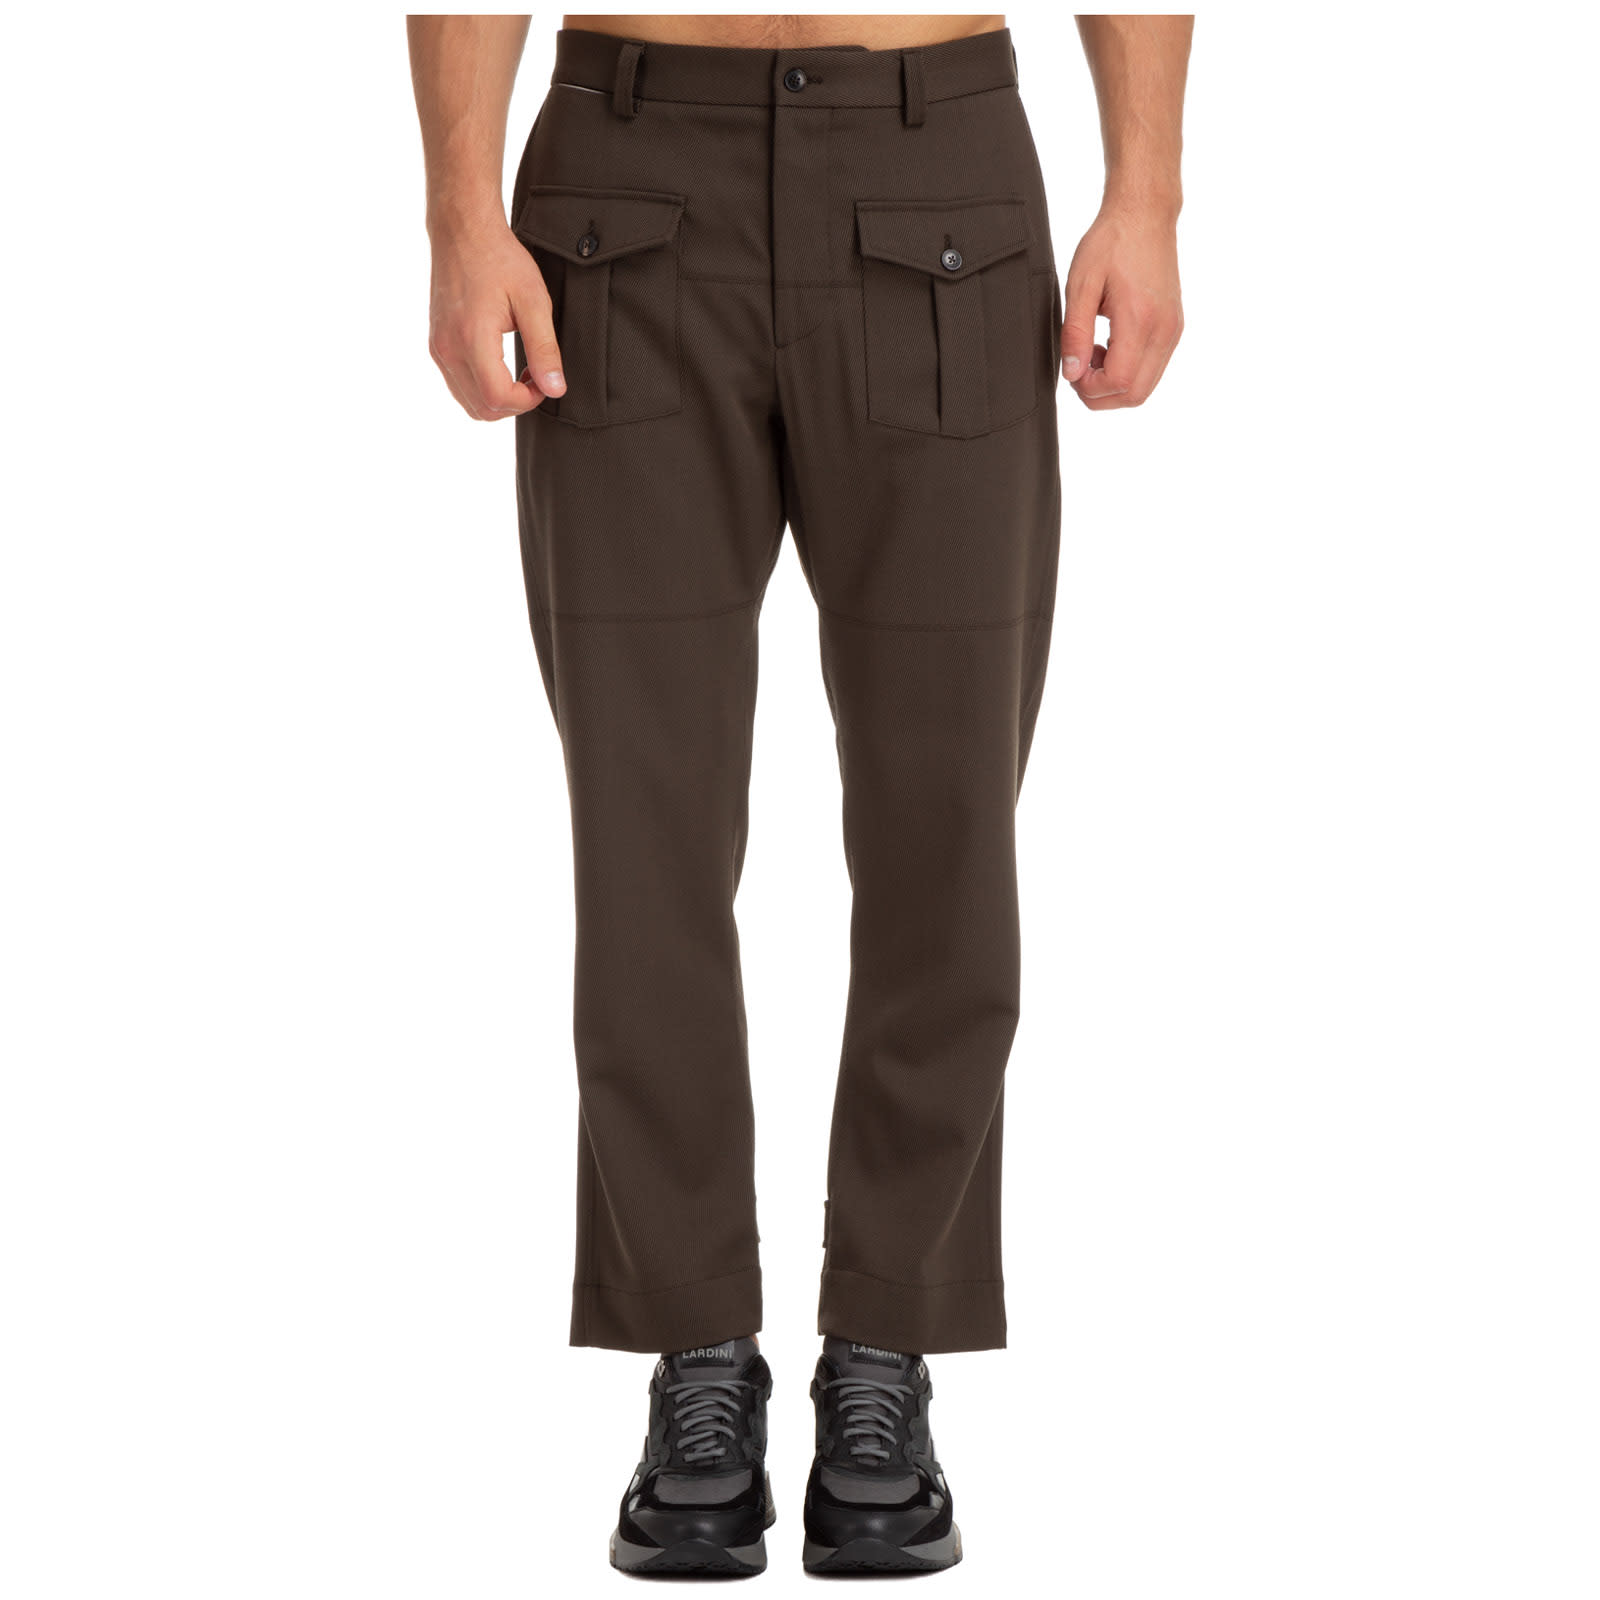 Chain Reaction Trousers